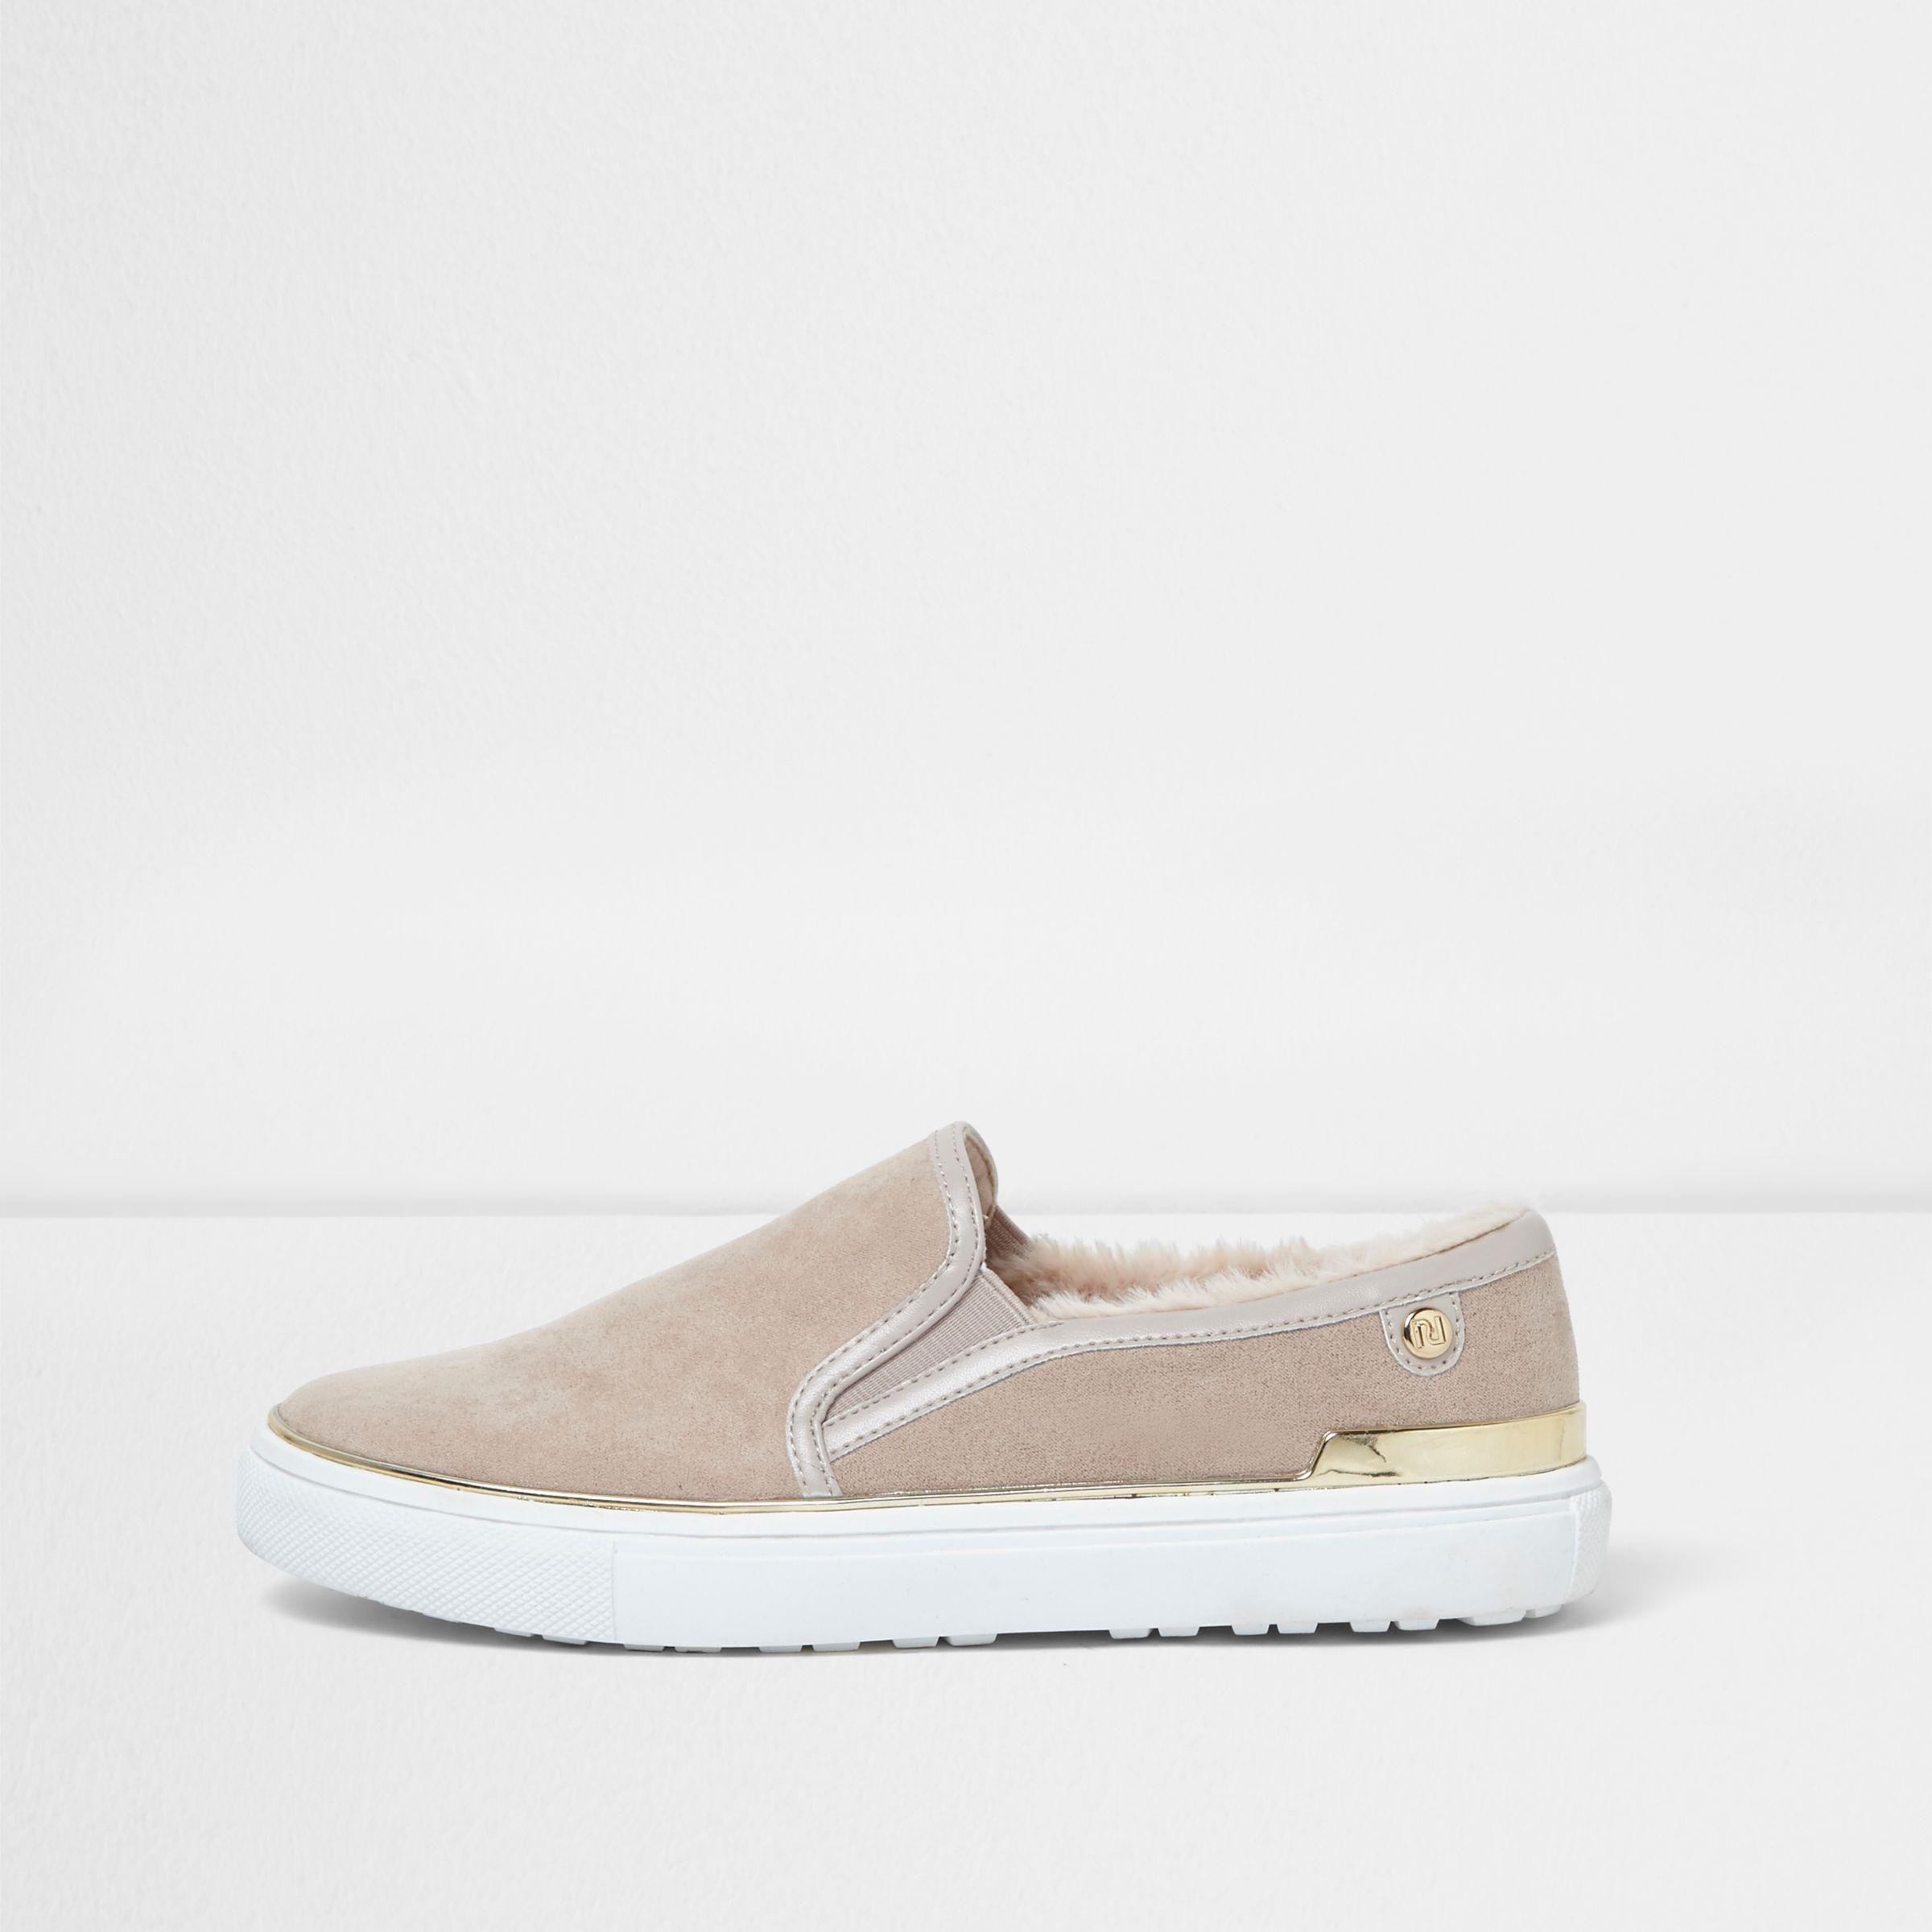 River Island Womens faux fur lined slip on plimsolls tvhhLZ